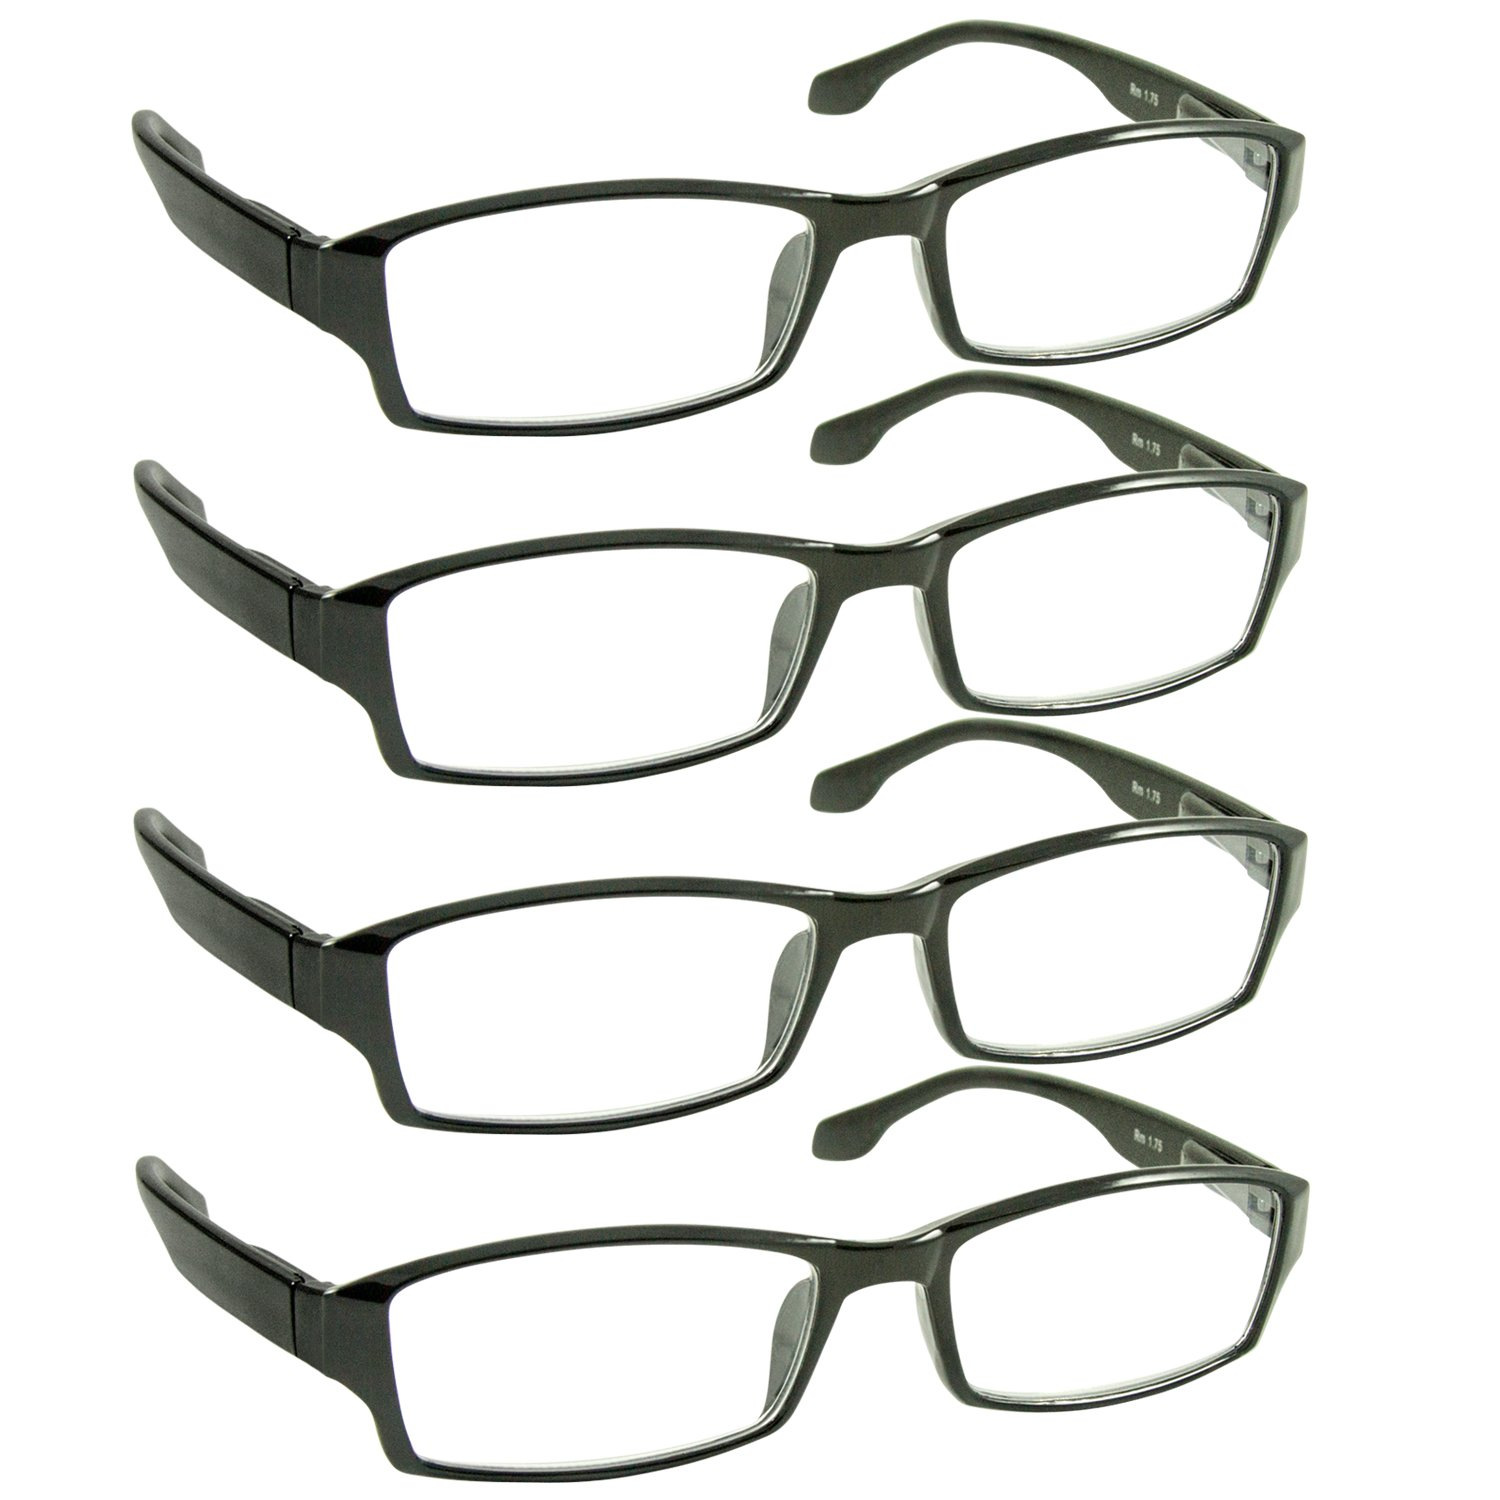 Amazon.com: Reading Glasses - 6 Pack - 3 Black & 3